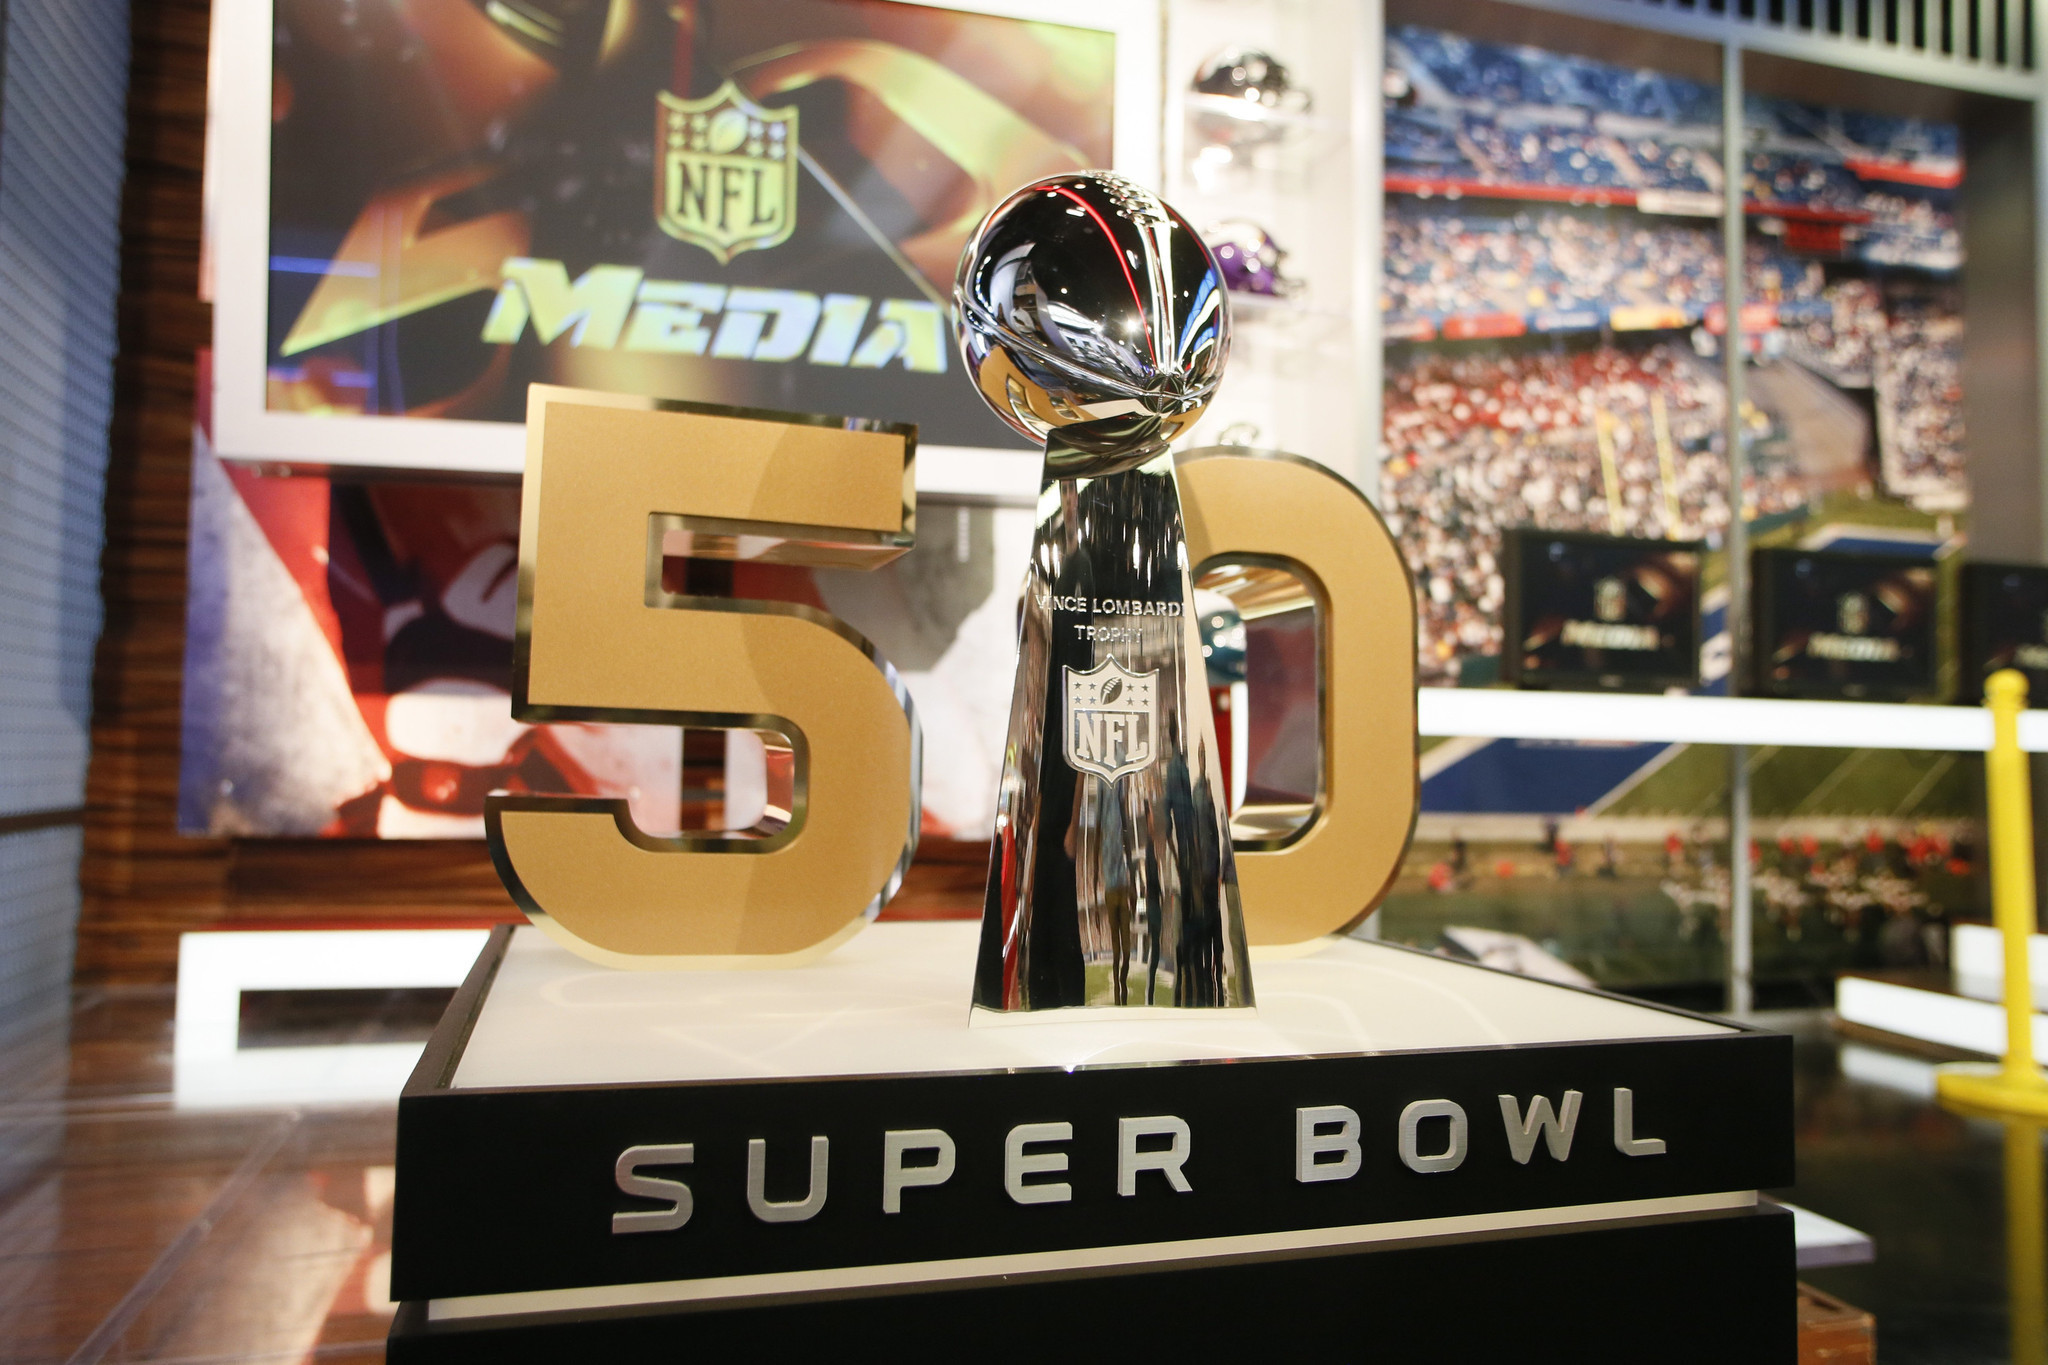 Super bowl 50 the game the entertainment the ads and more